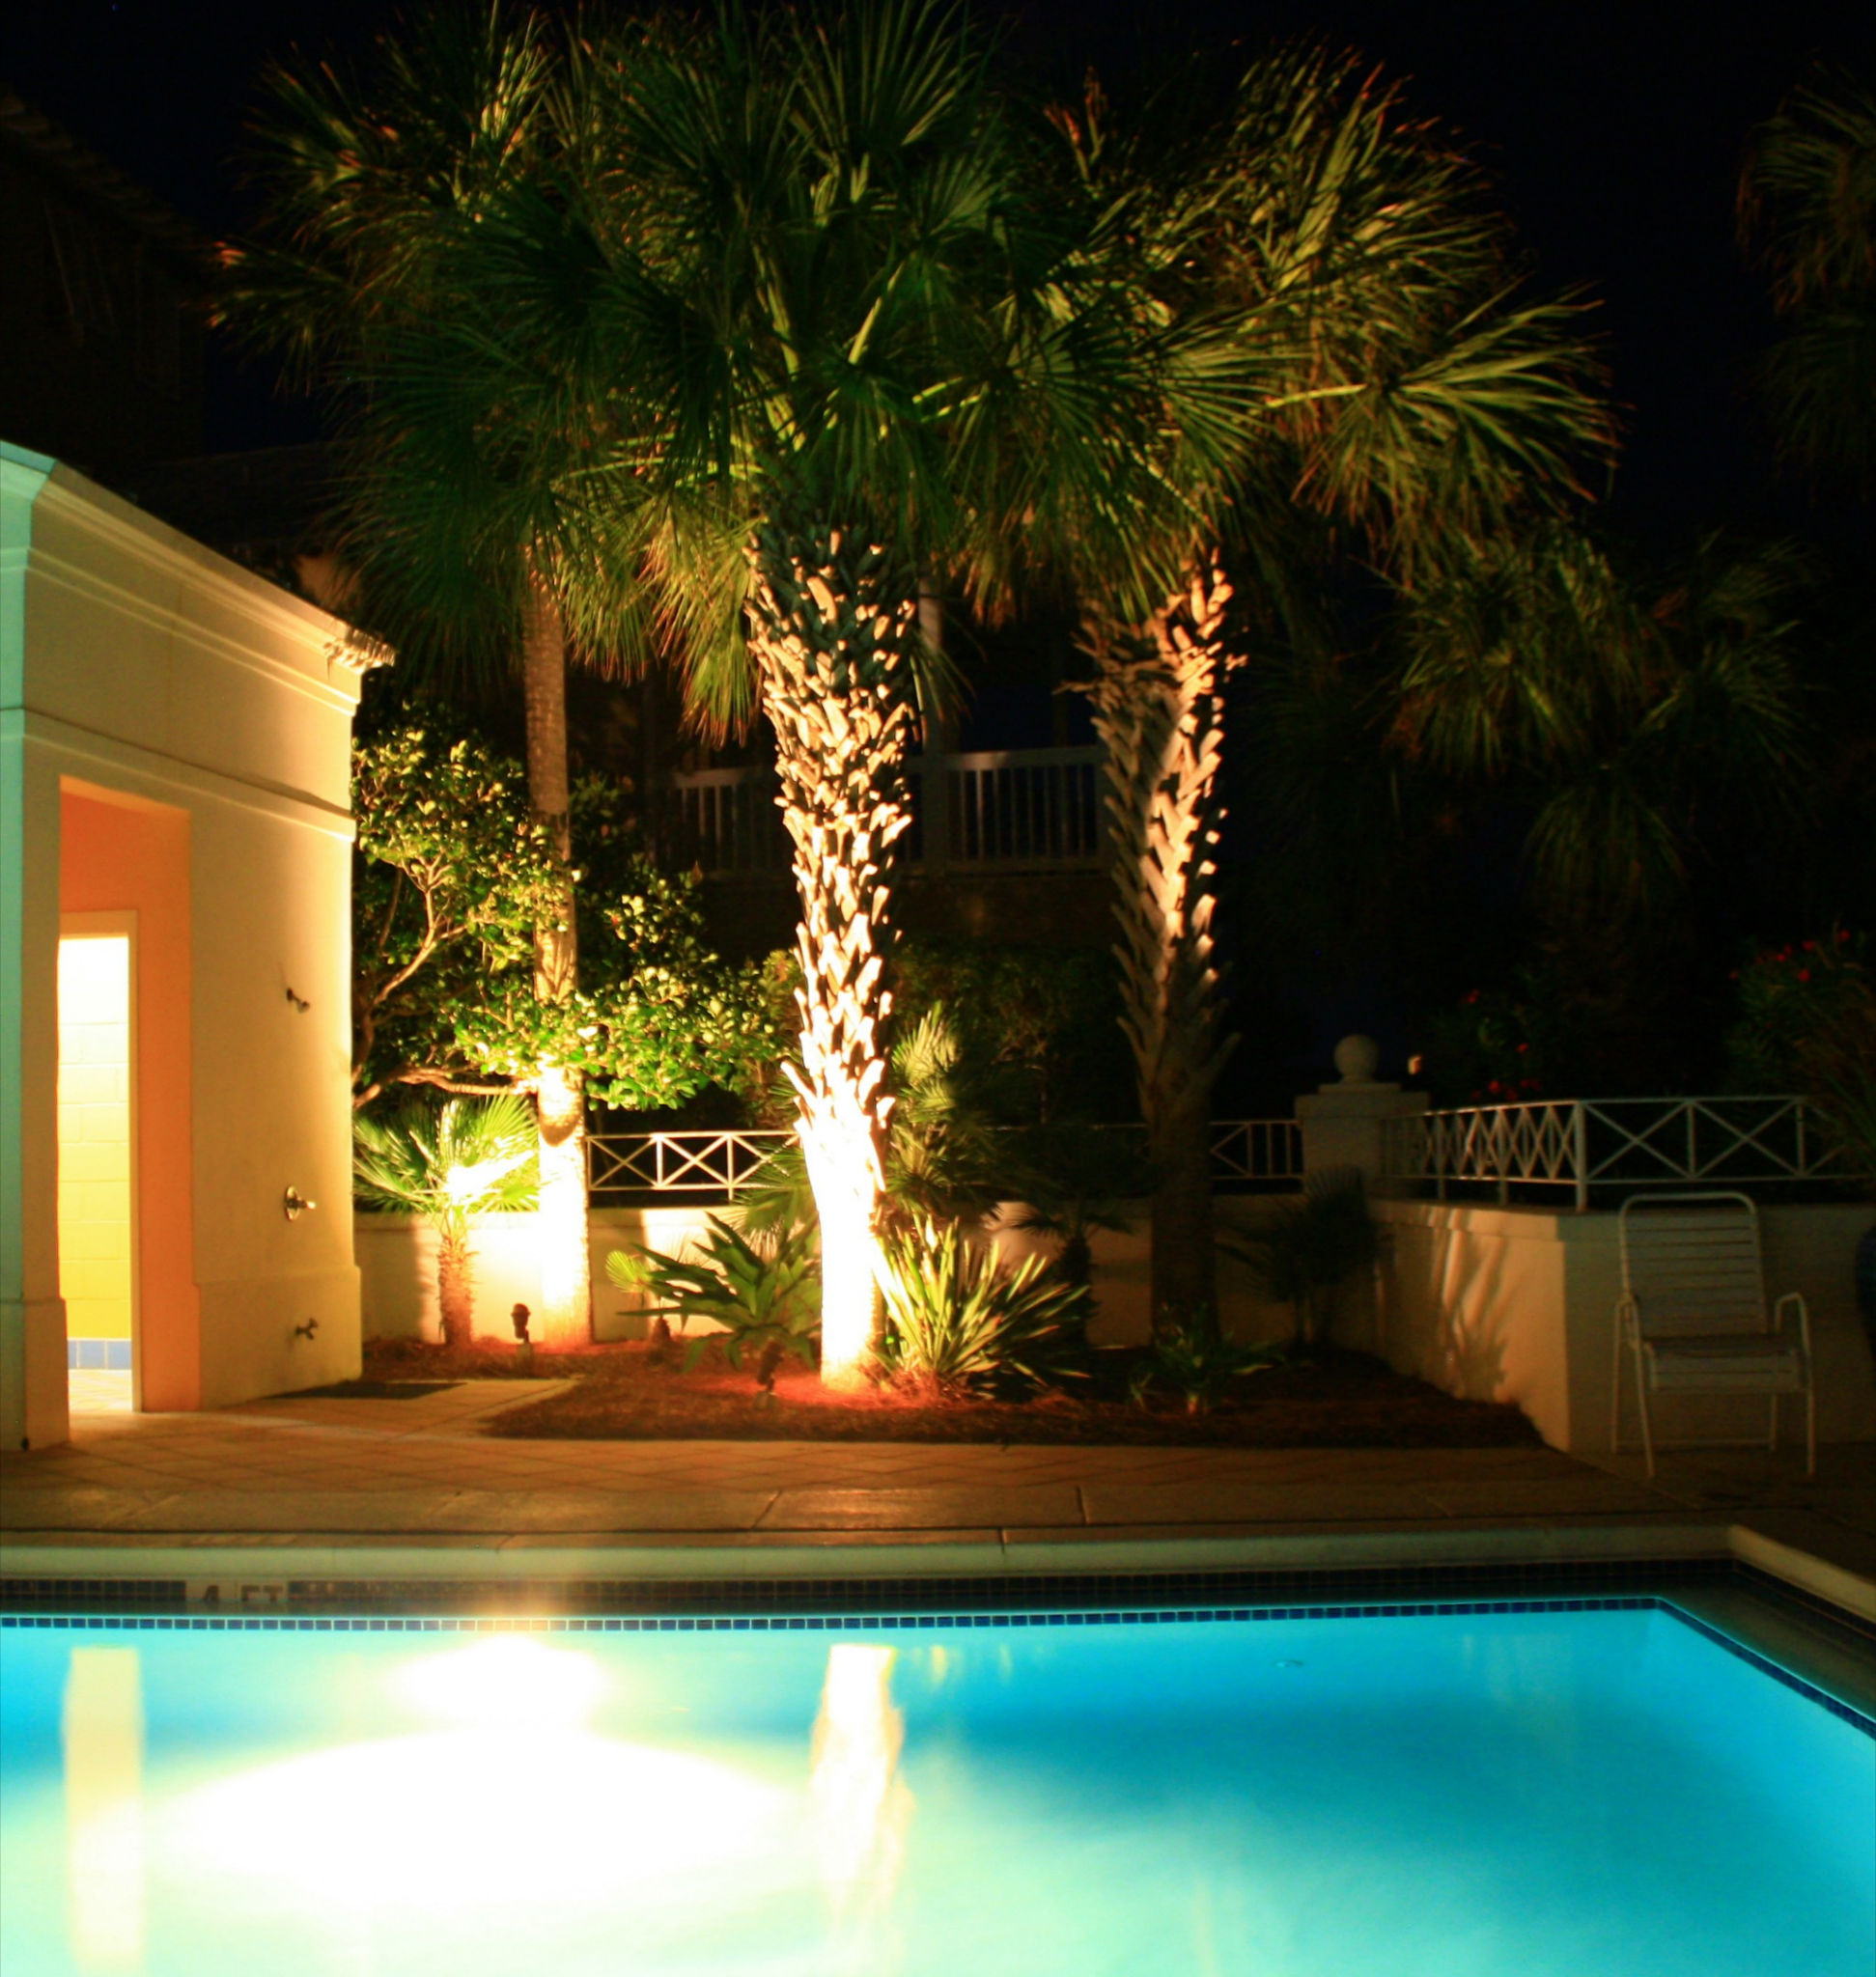 Brighten your public pool space and spotlight your palm trees with our commercial lighting services